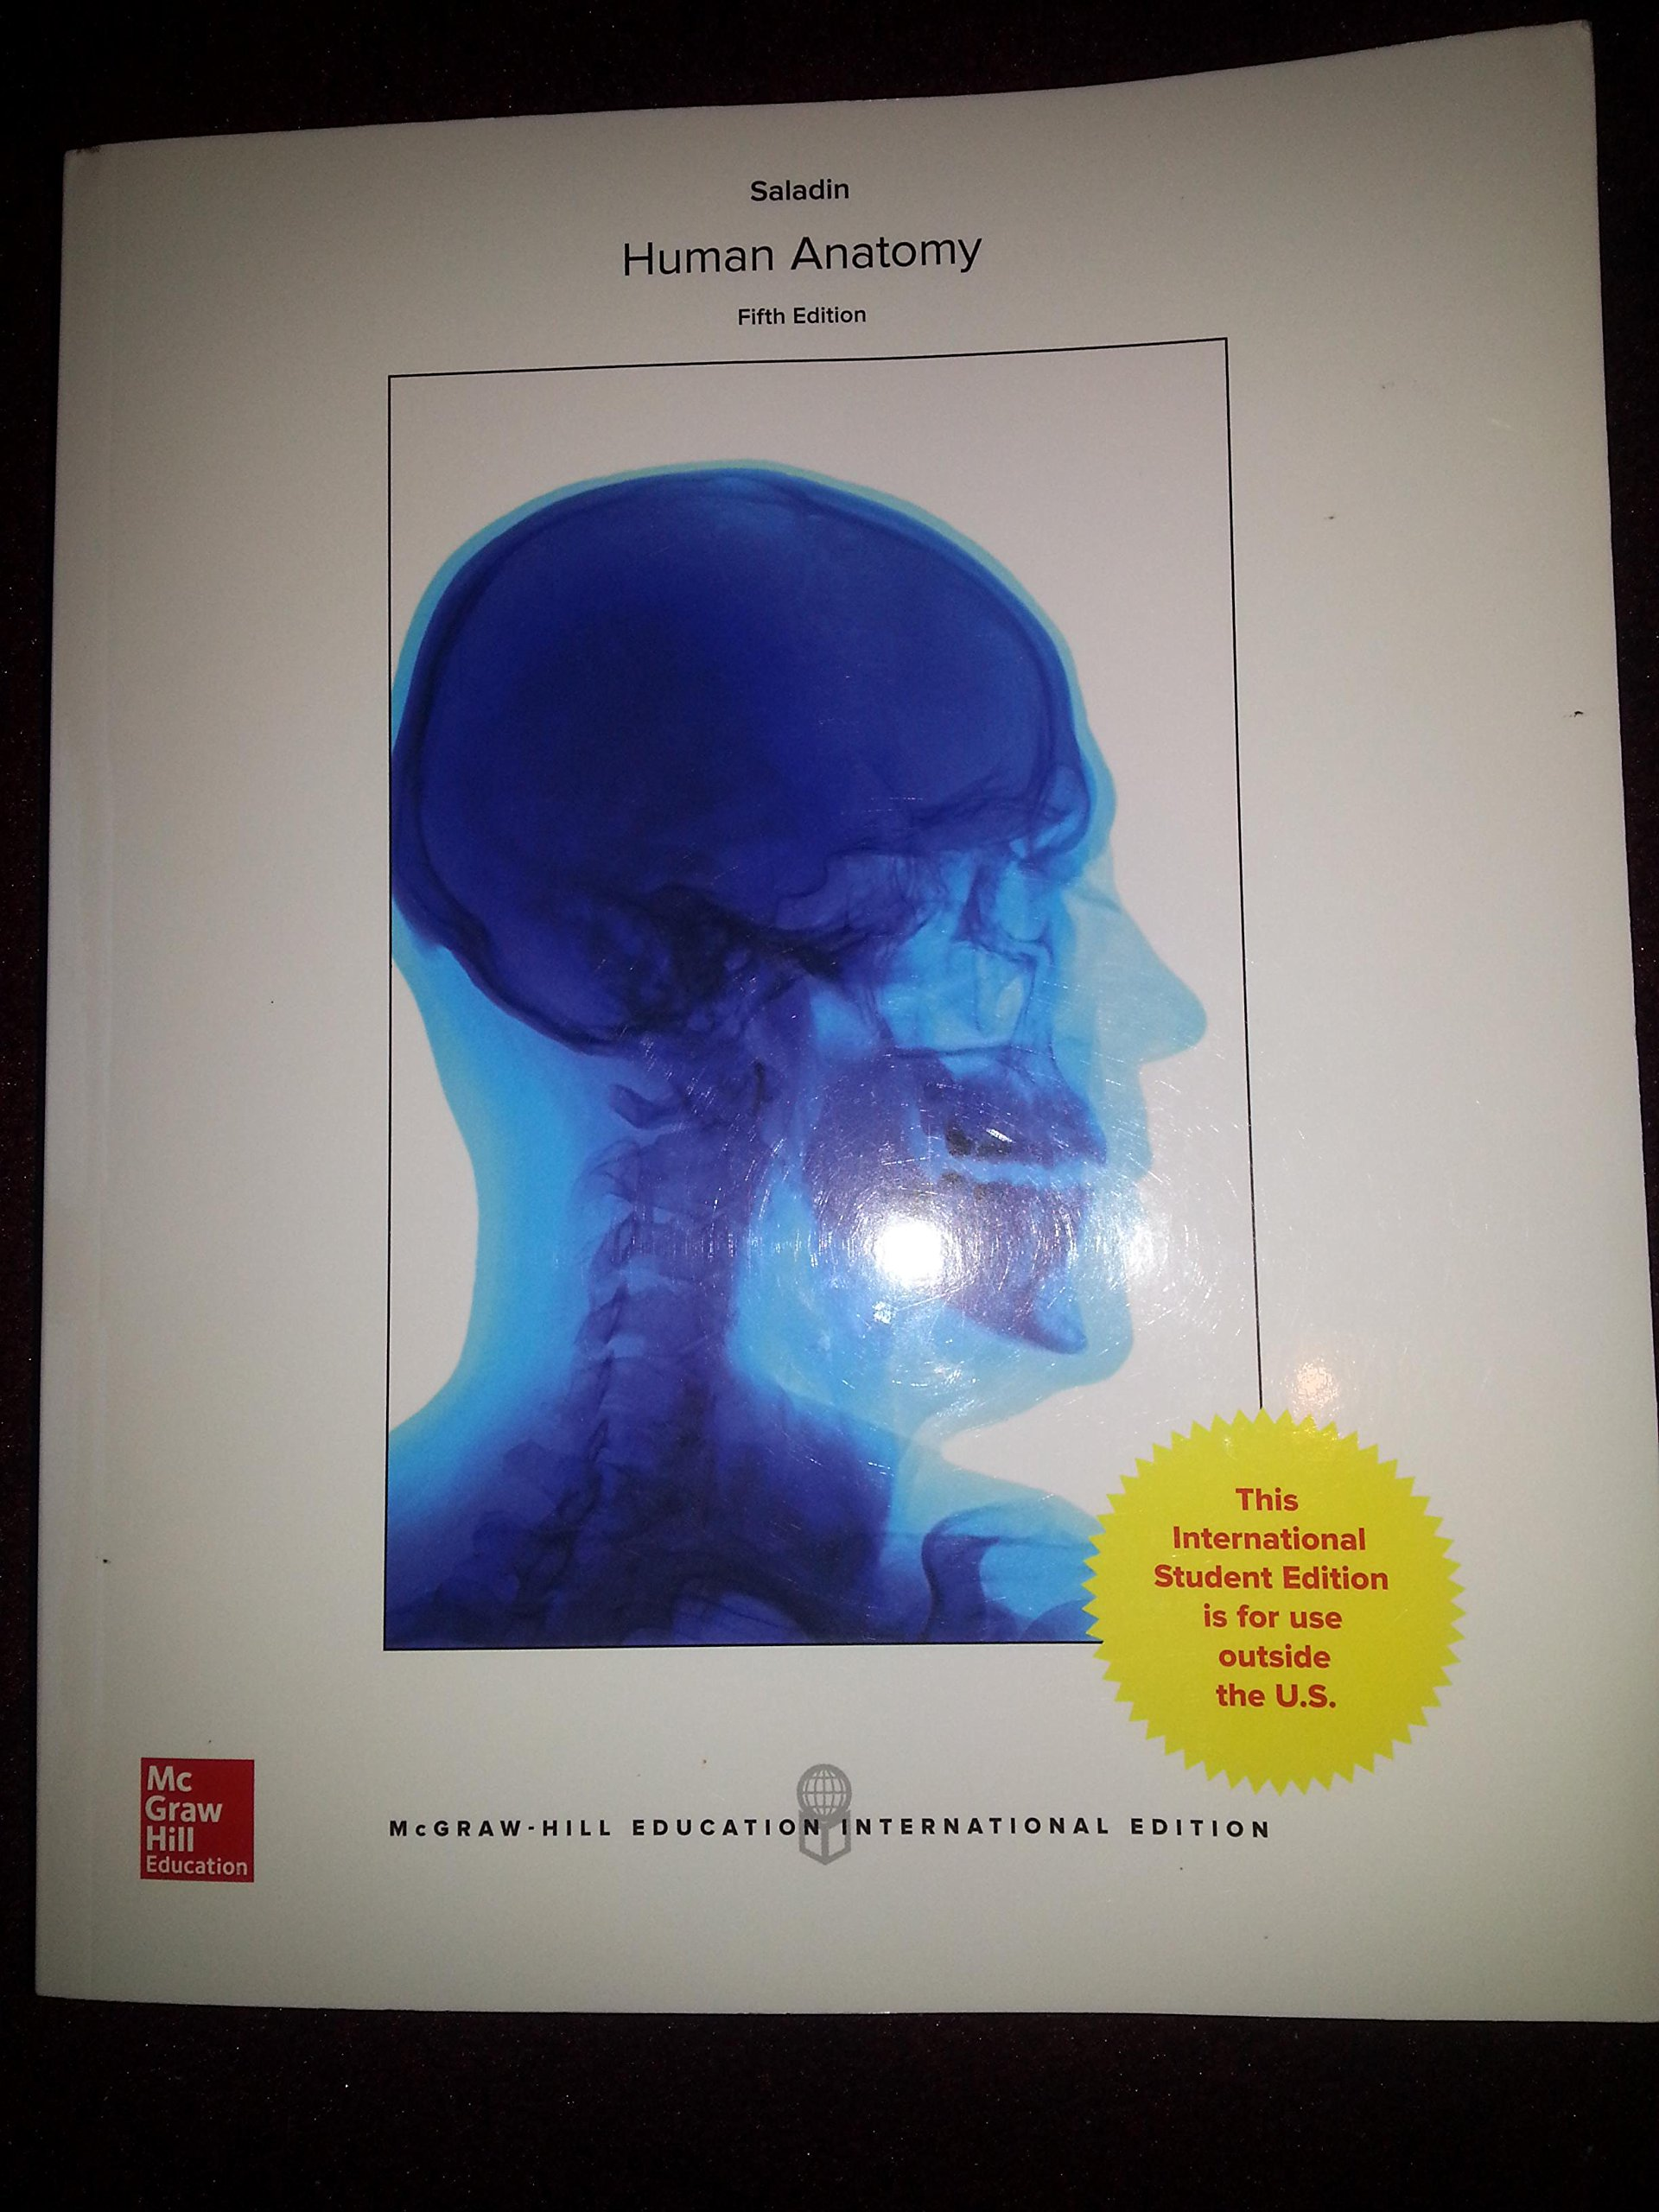 Human Anatomy: Amazon.co.uk: Kenneth Saladin: 9781259254819: Books